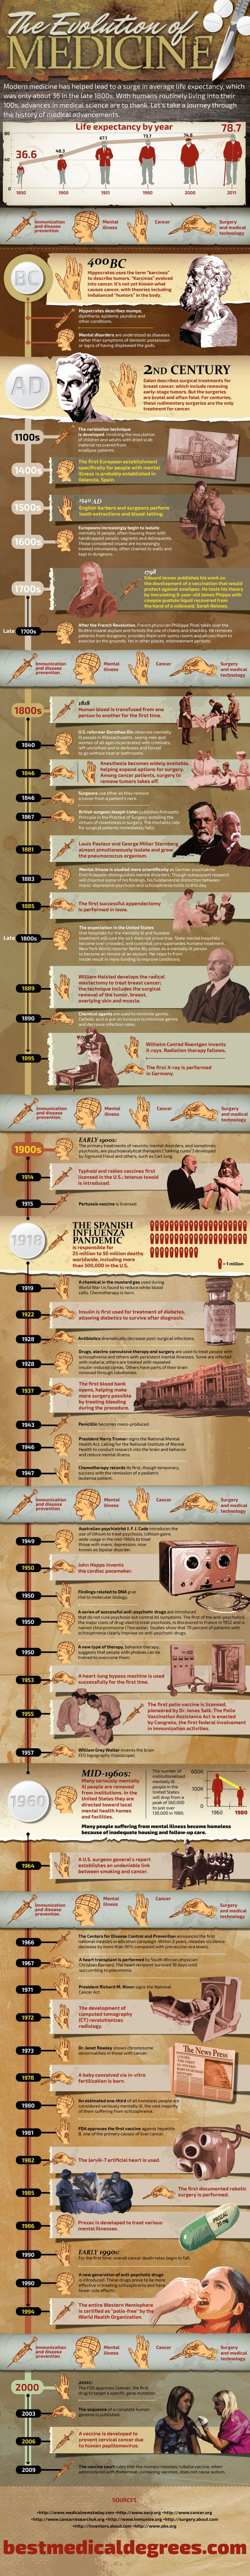 ☤ MD ☞☆☆☆ The Evolution of Medicine | A Health Education Infographic |